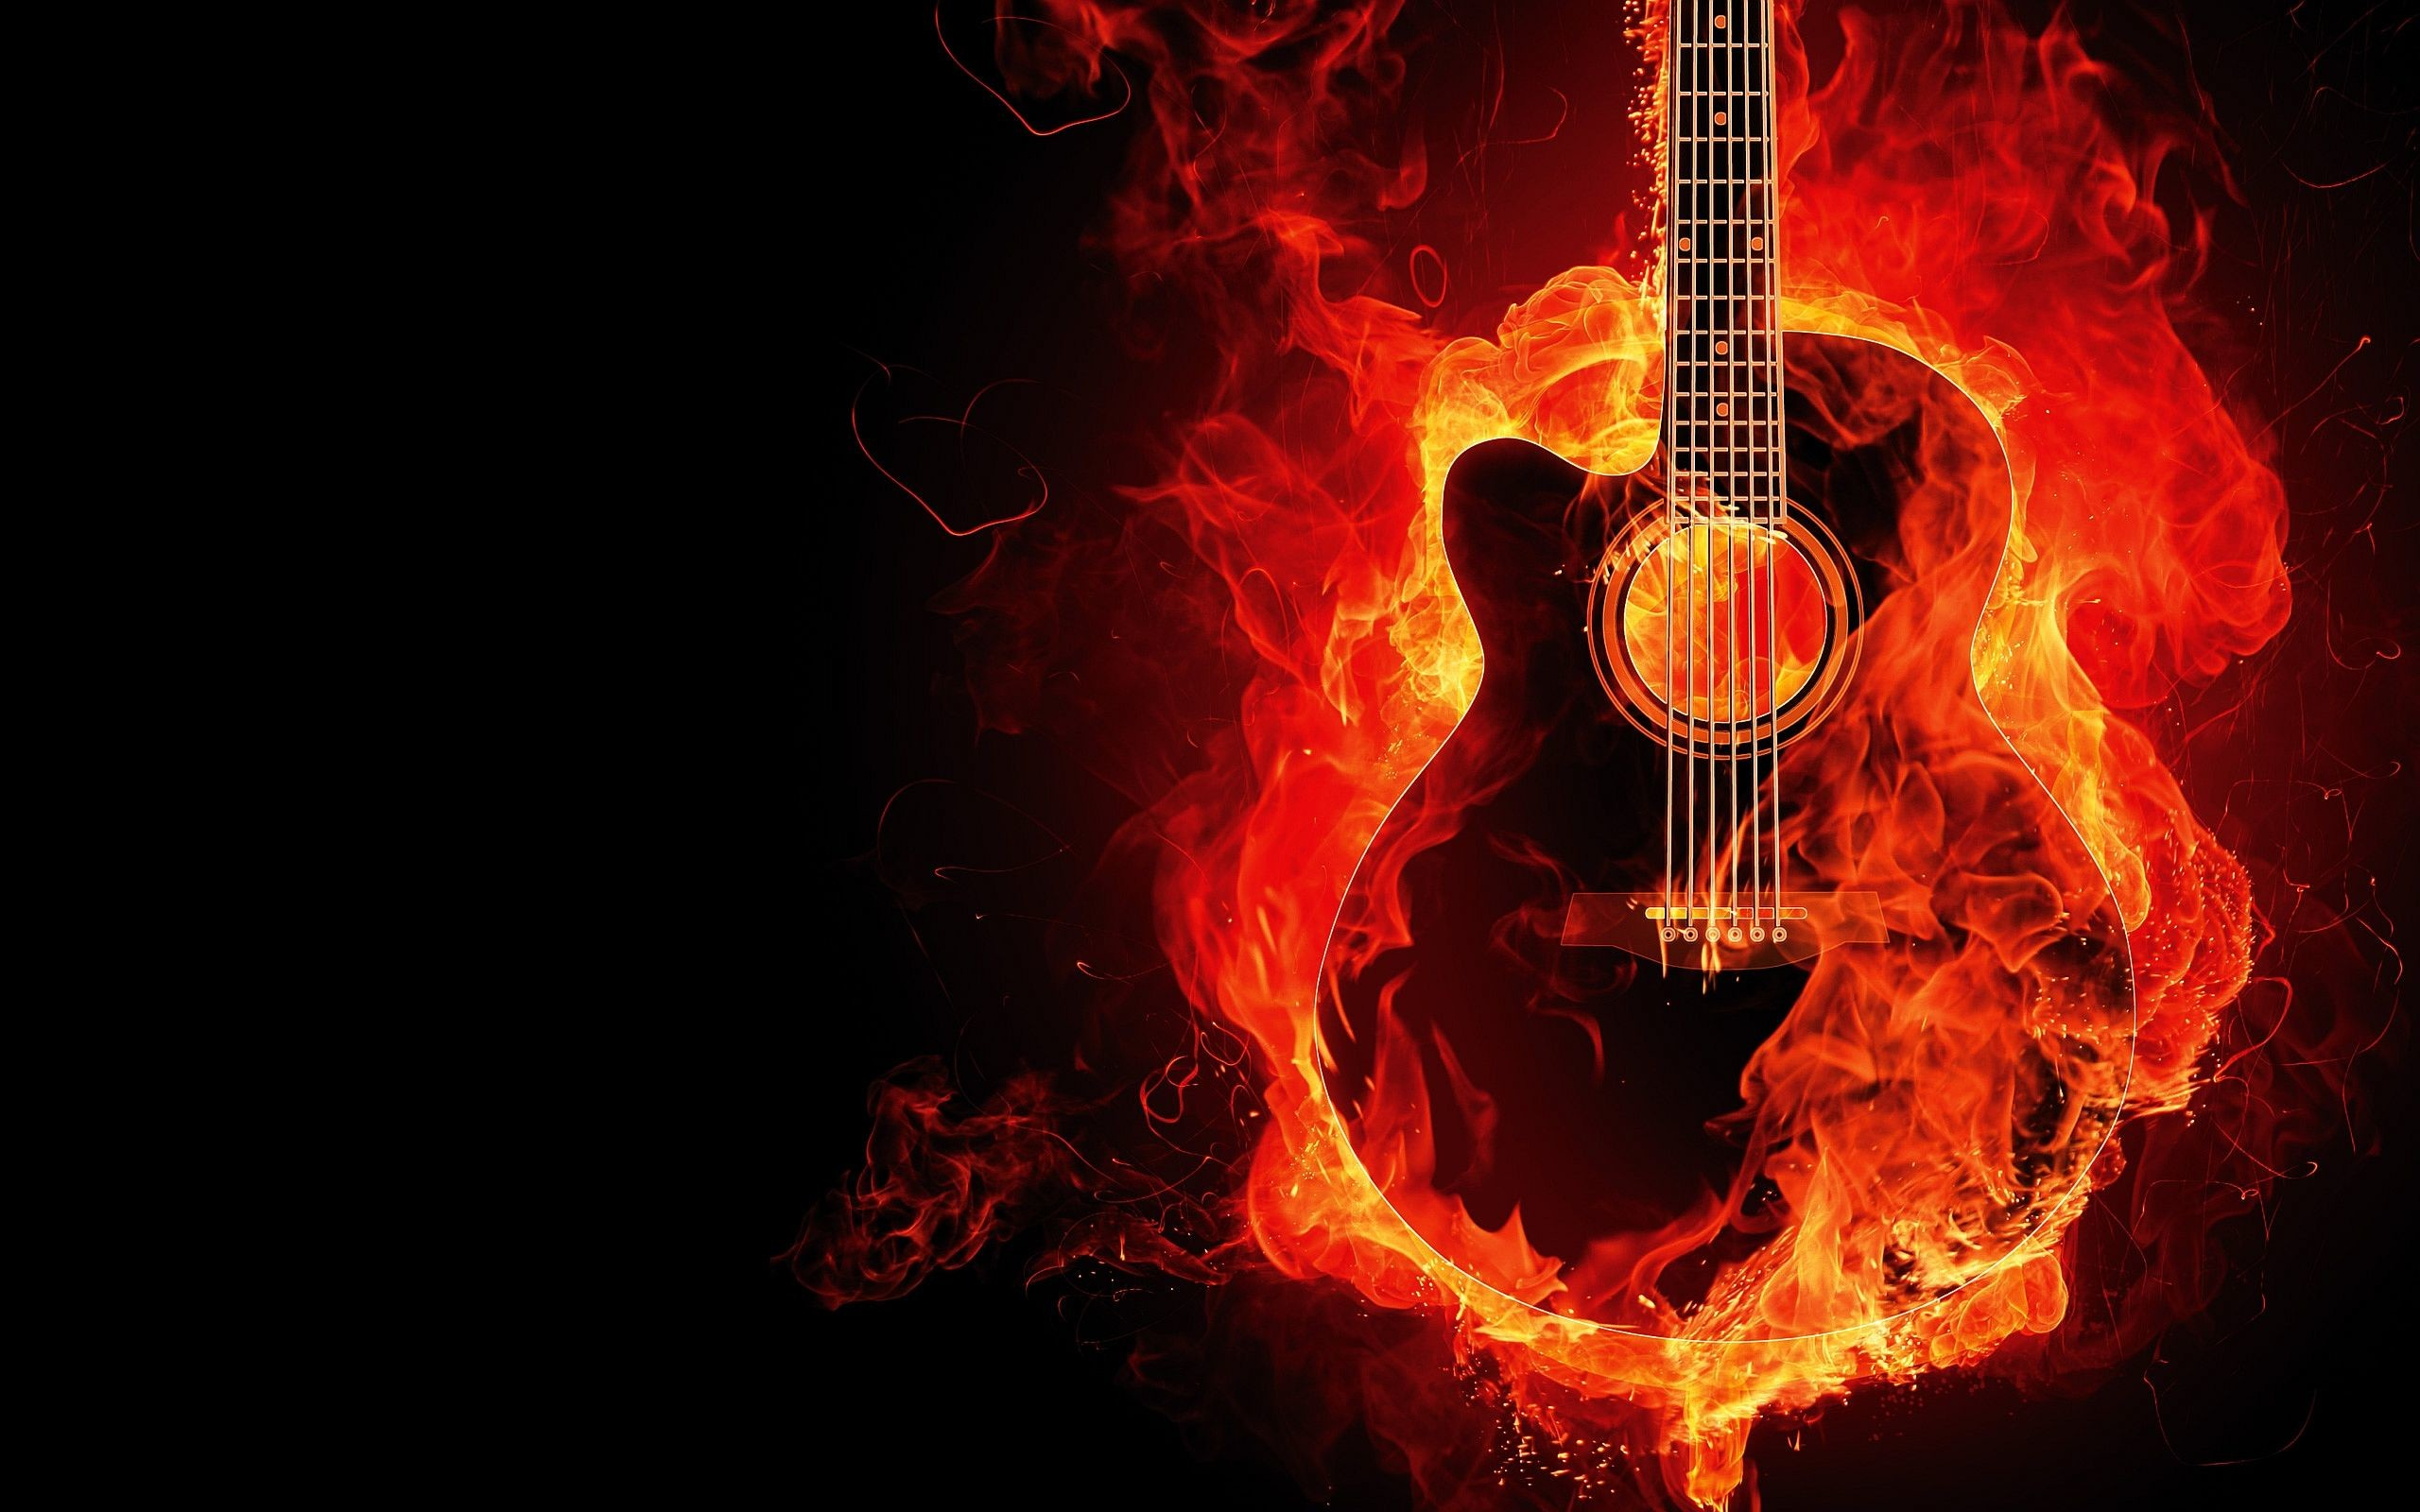 2560x1600 Guitar on Fire